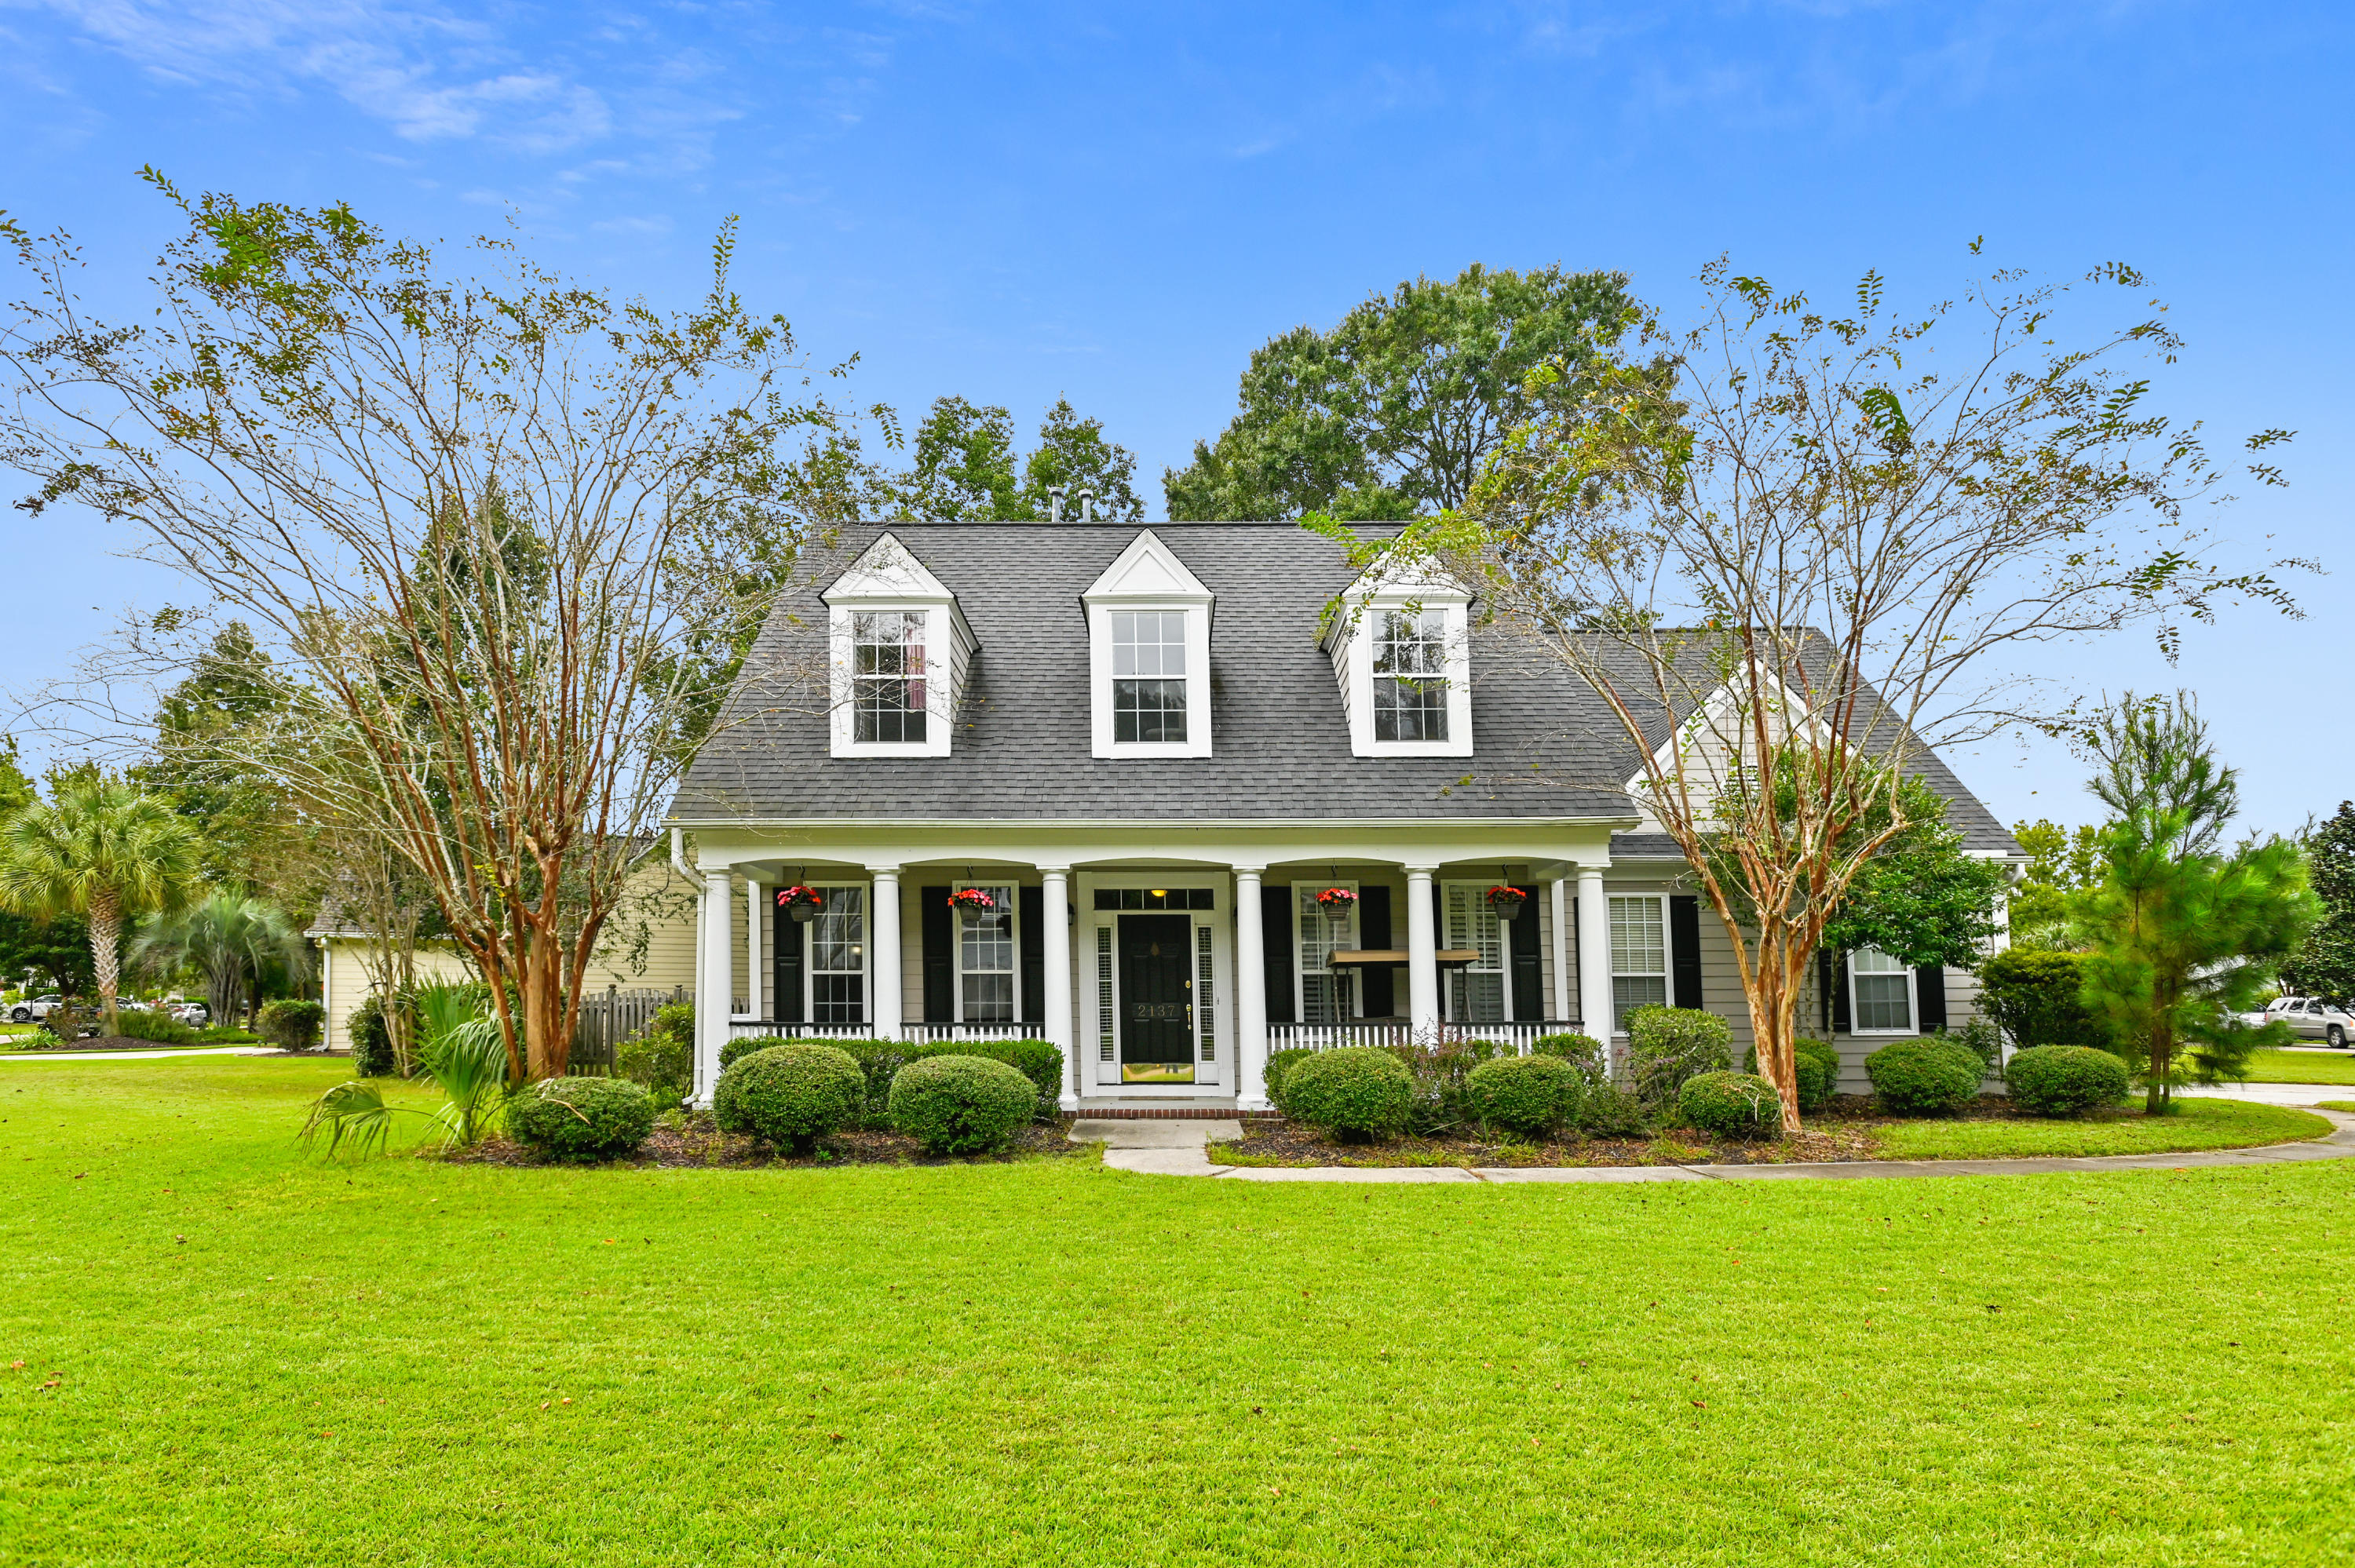 Dunes West Homes For Sale - 2137 Tall Grass, Mount Pleasant, SC - 11